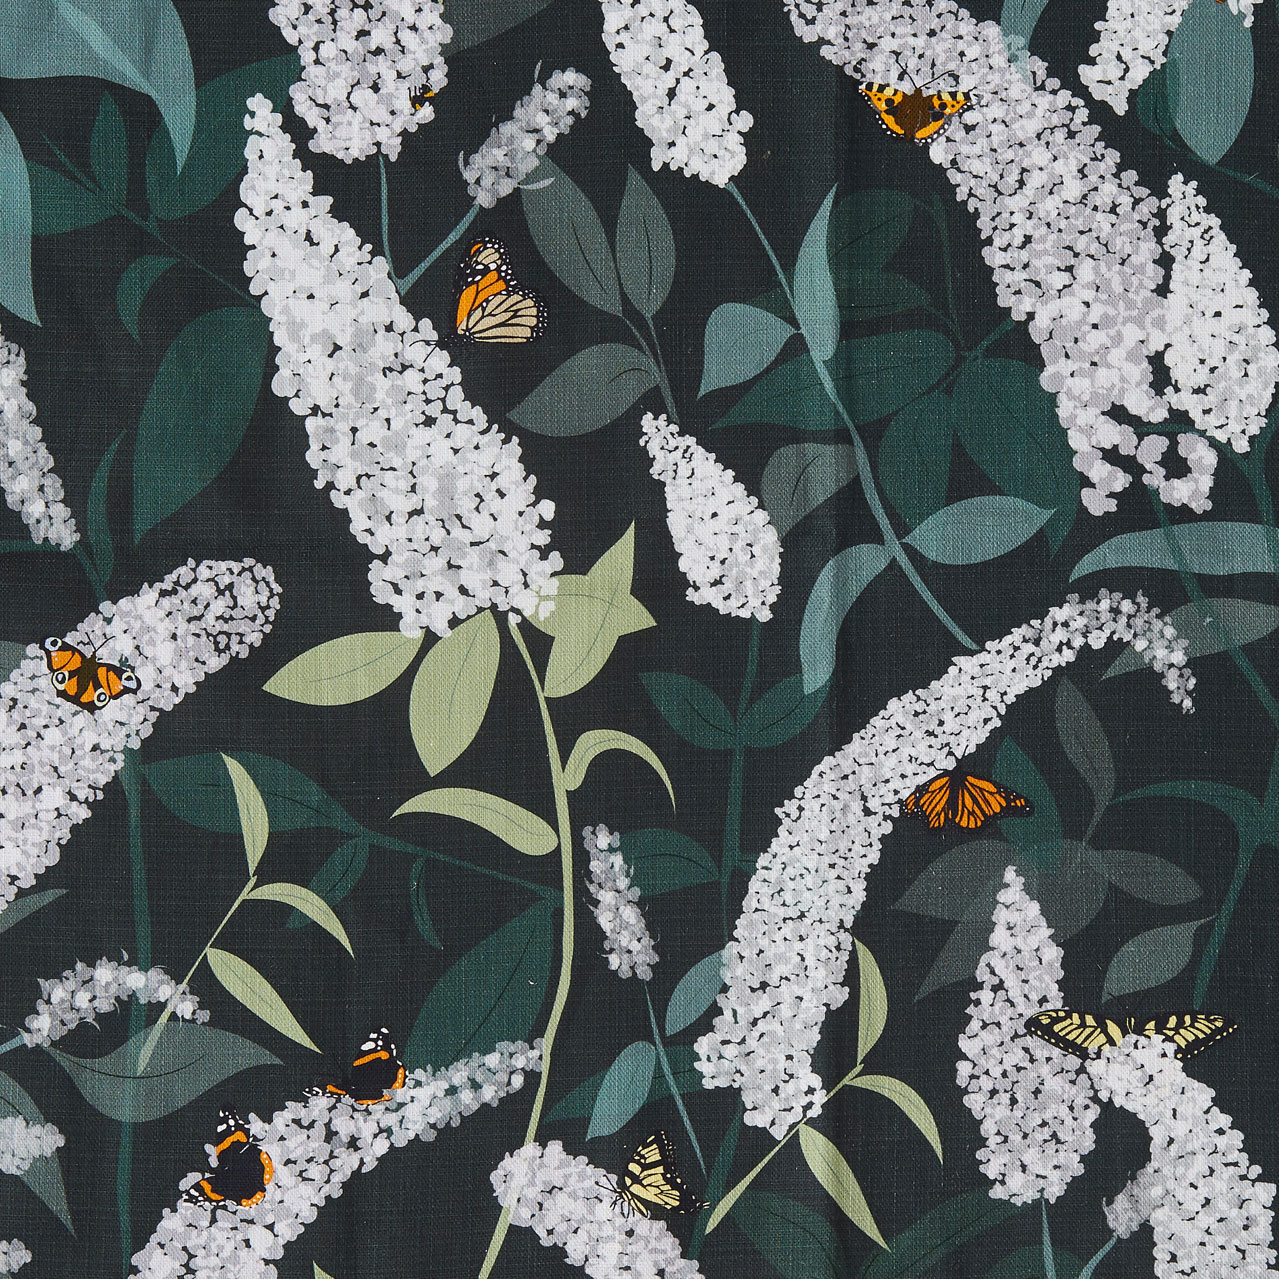 ... Green Butterfly Fabric For Upholstery   Bees And Buddleia   Lorna Syson